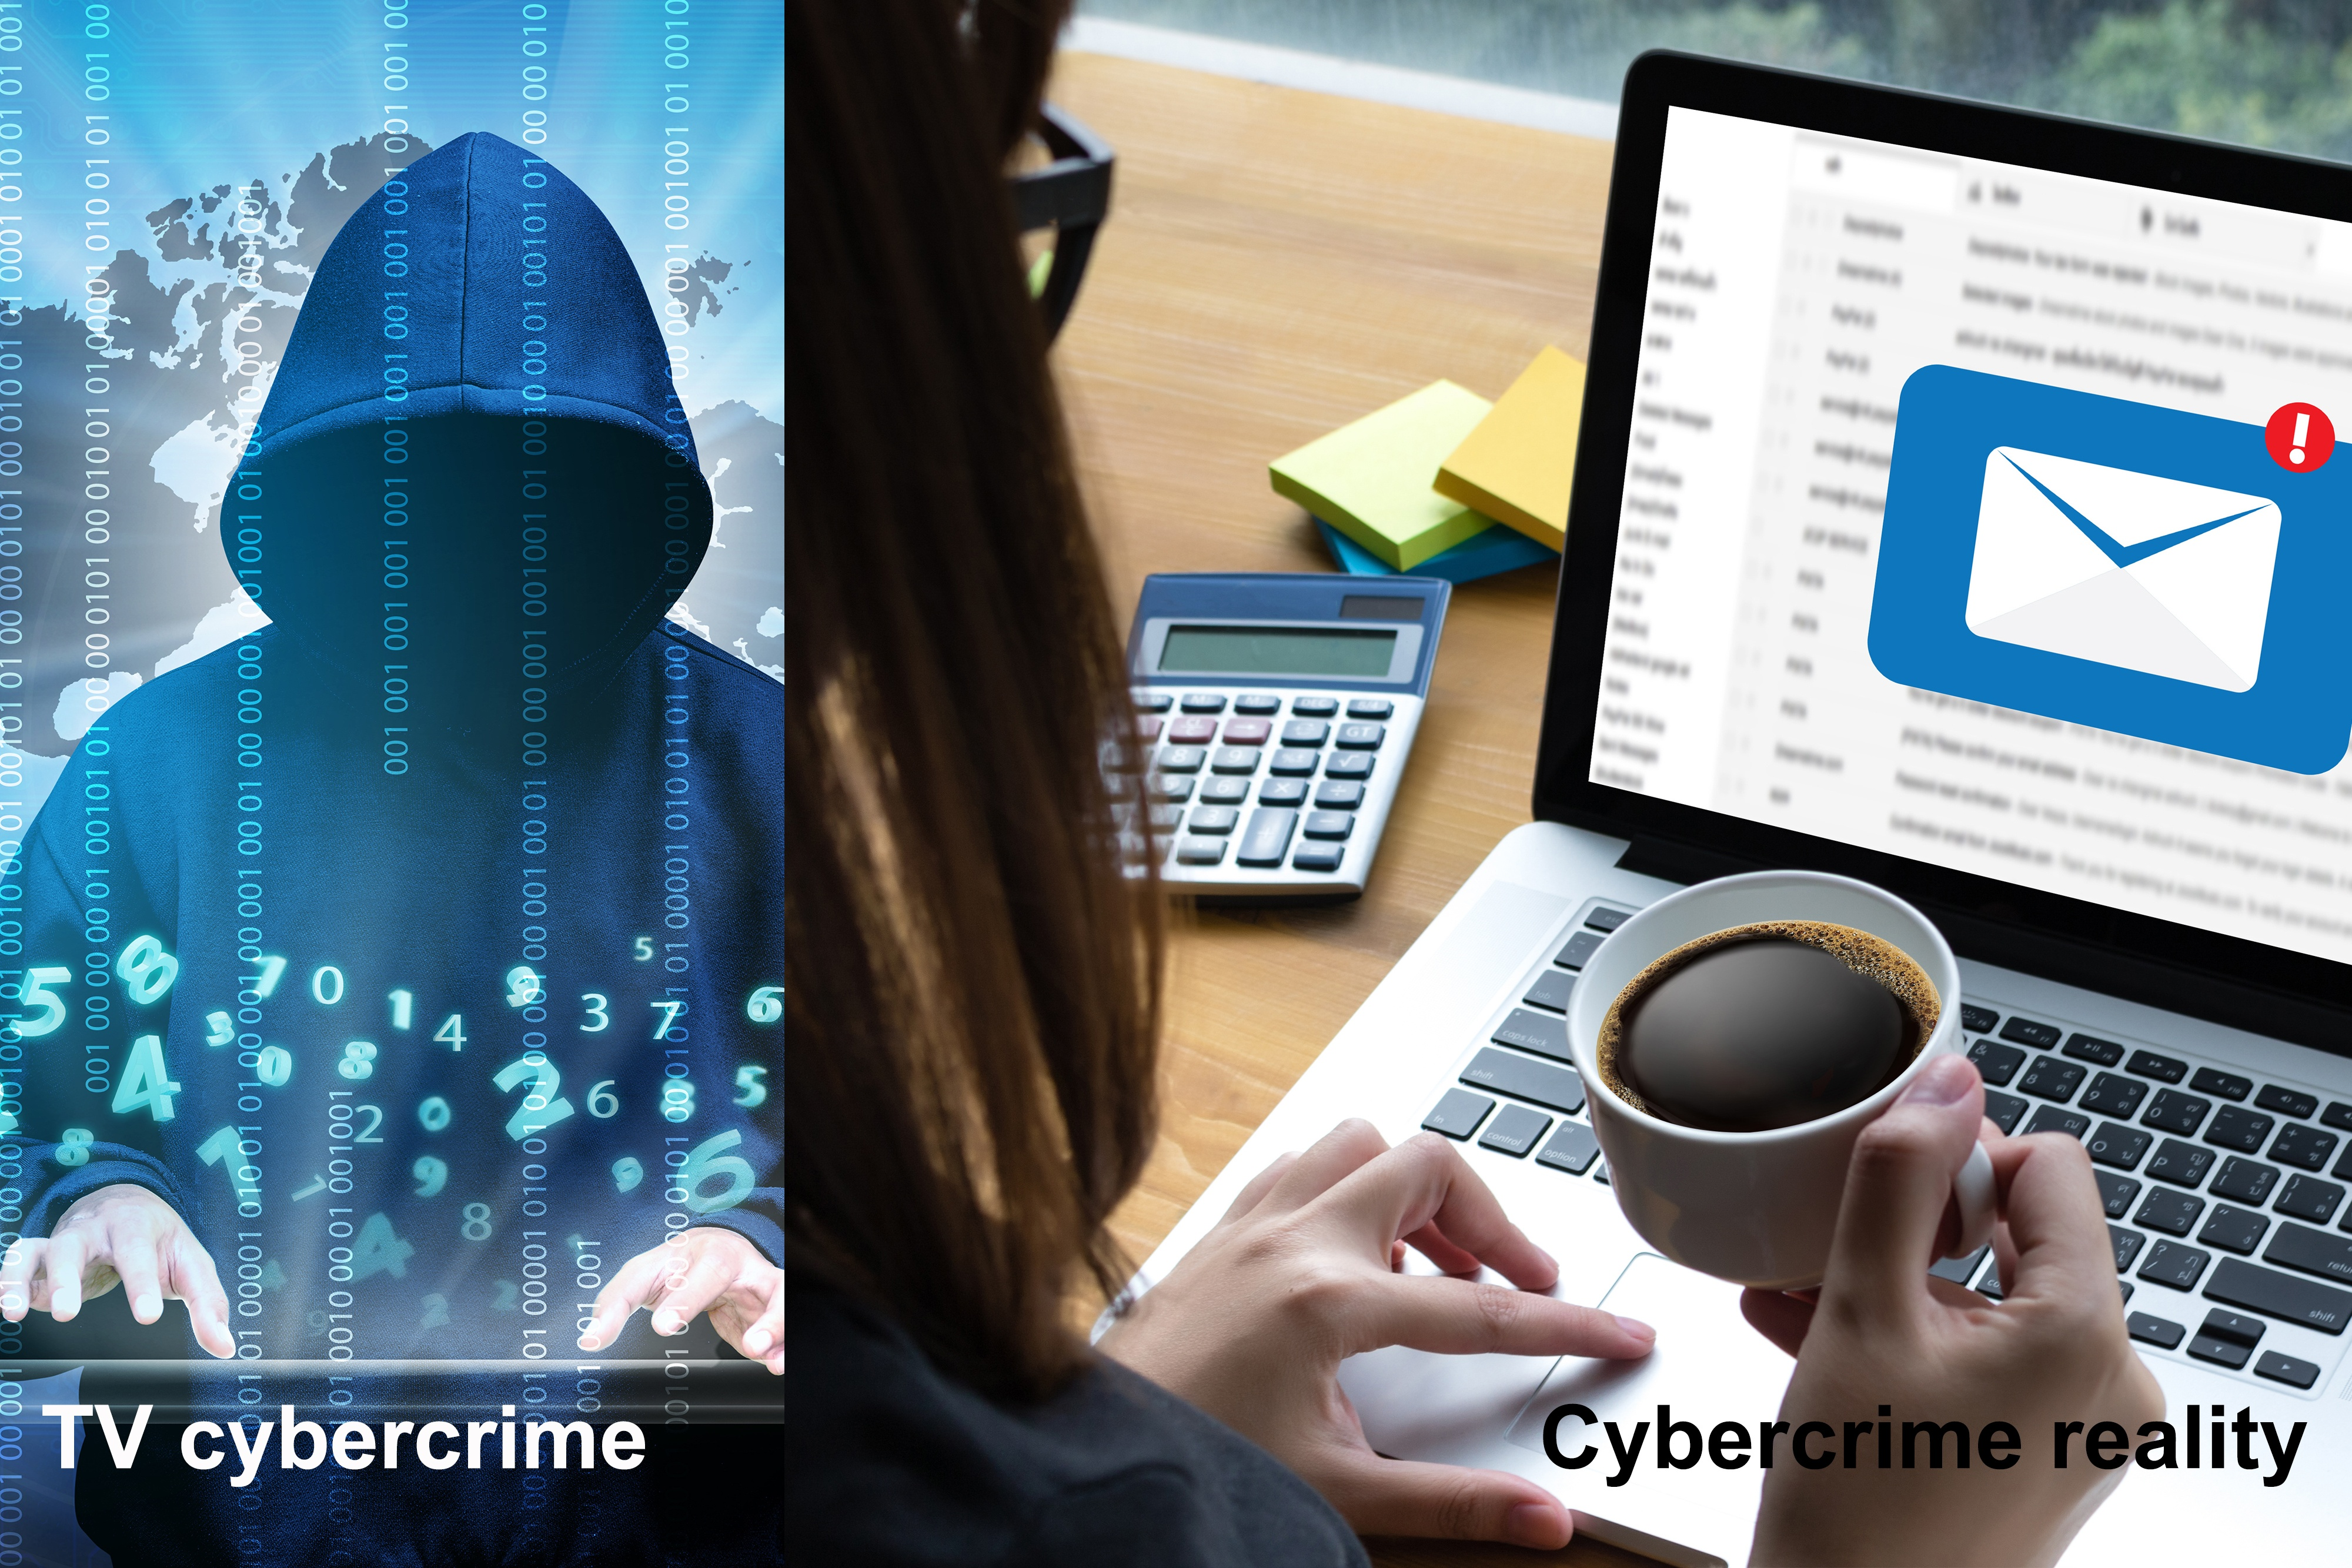 tv-cybercrime-vs-real